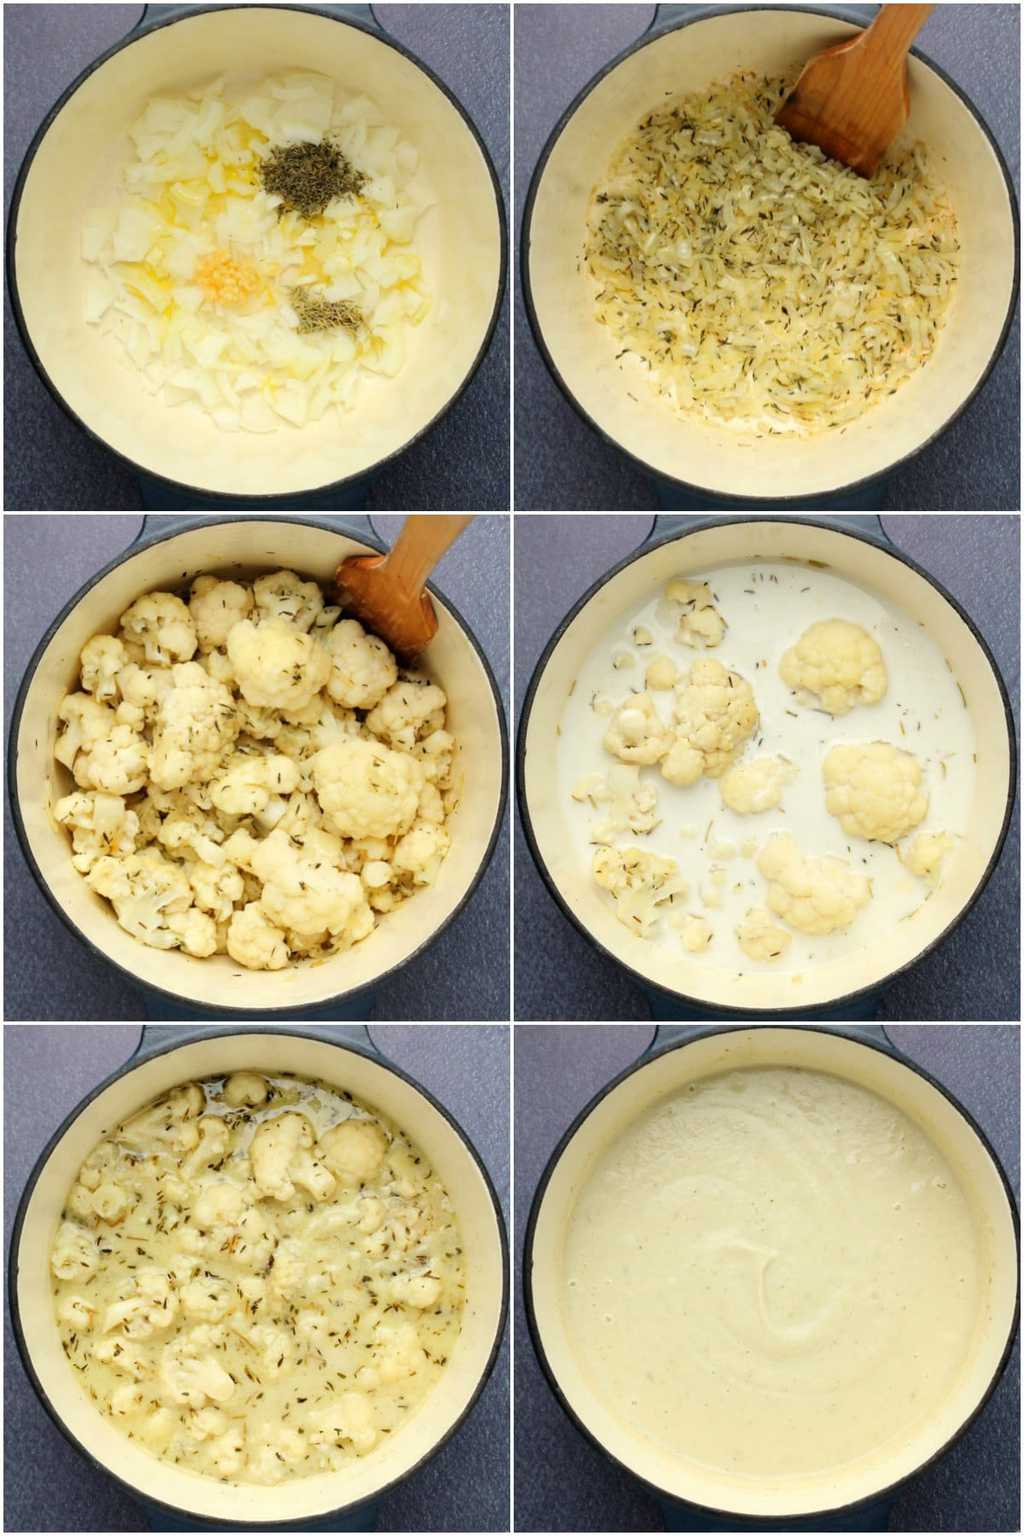 Step by step process photo collage of making vegan cauliflower soup.